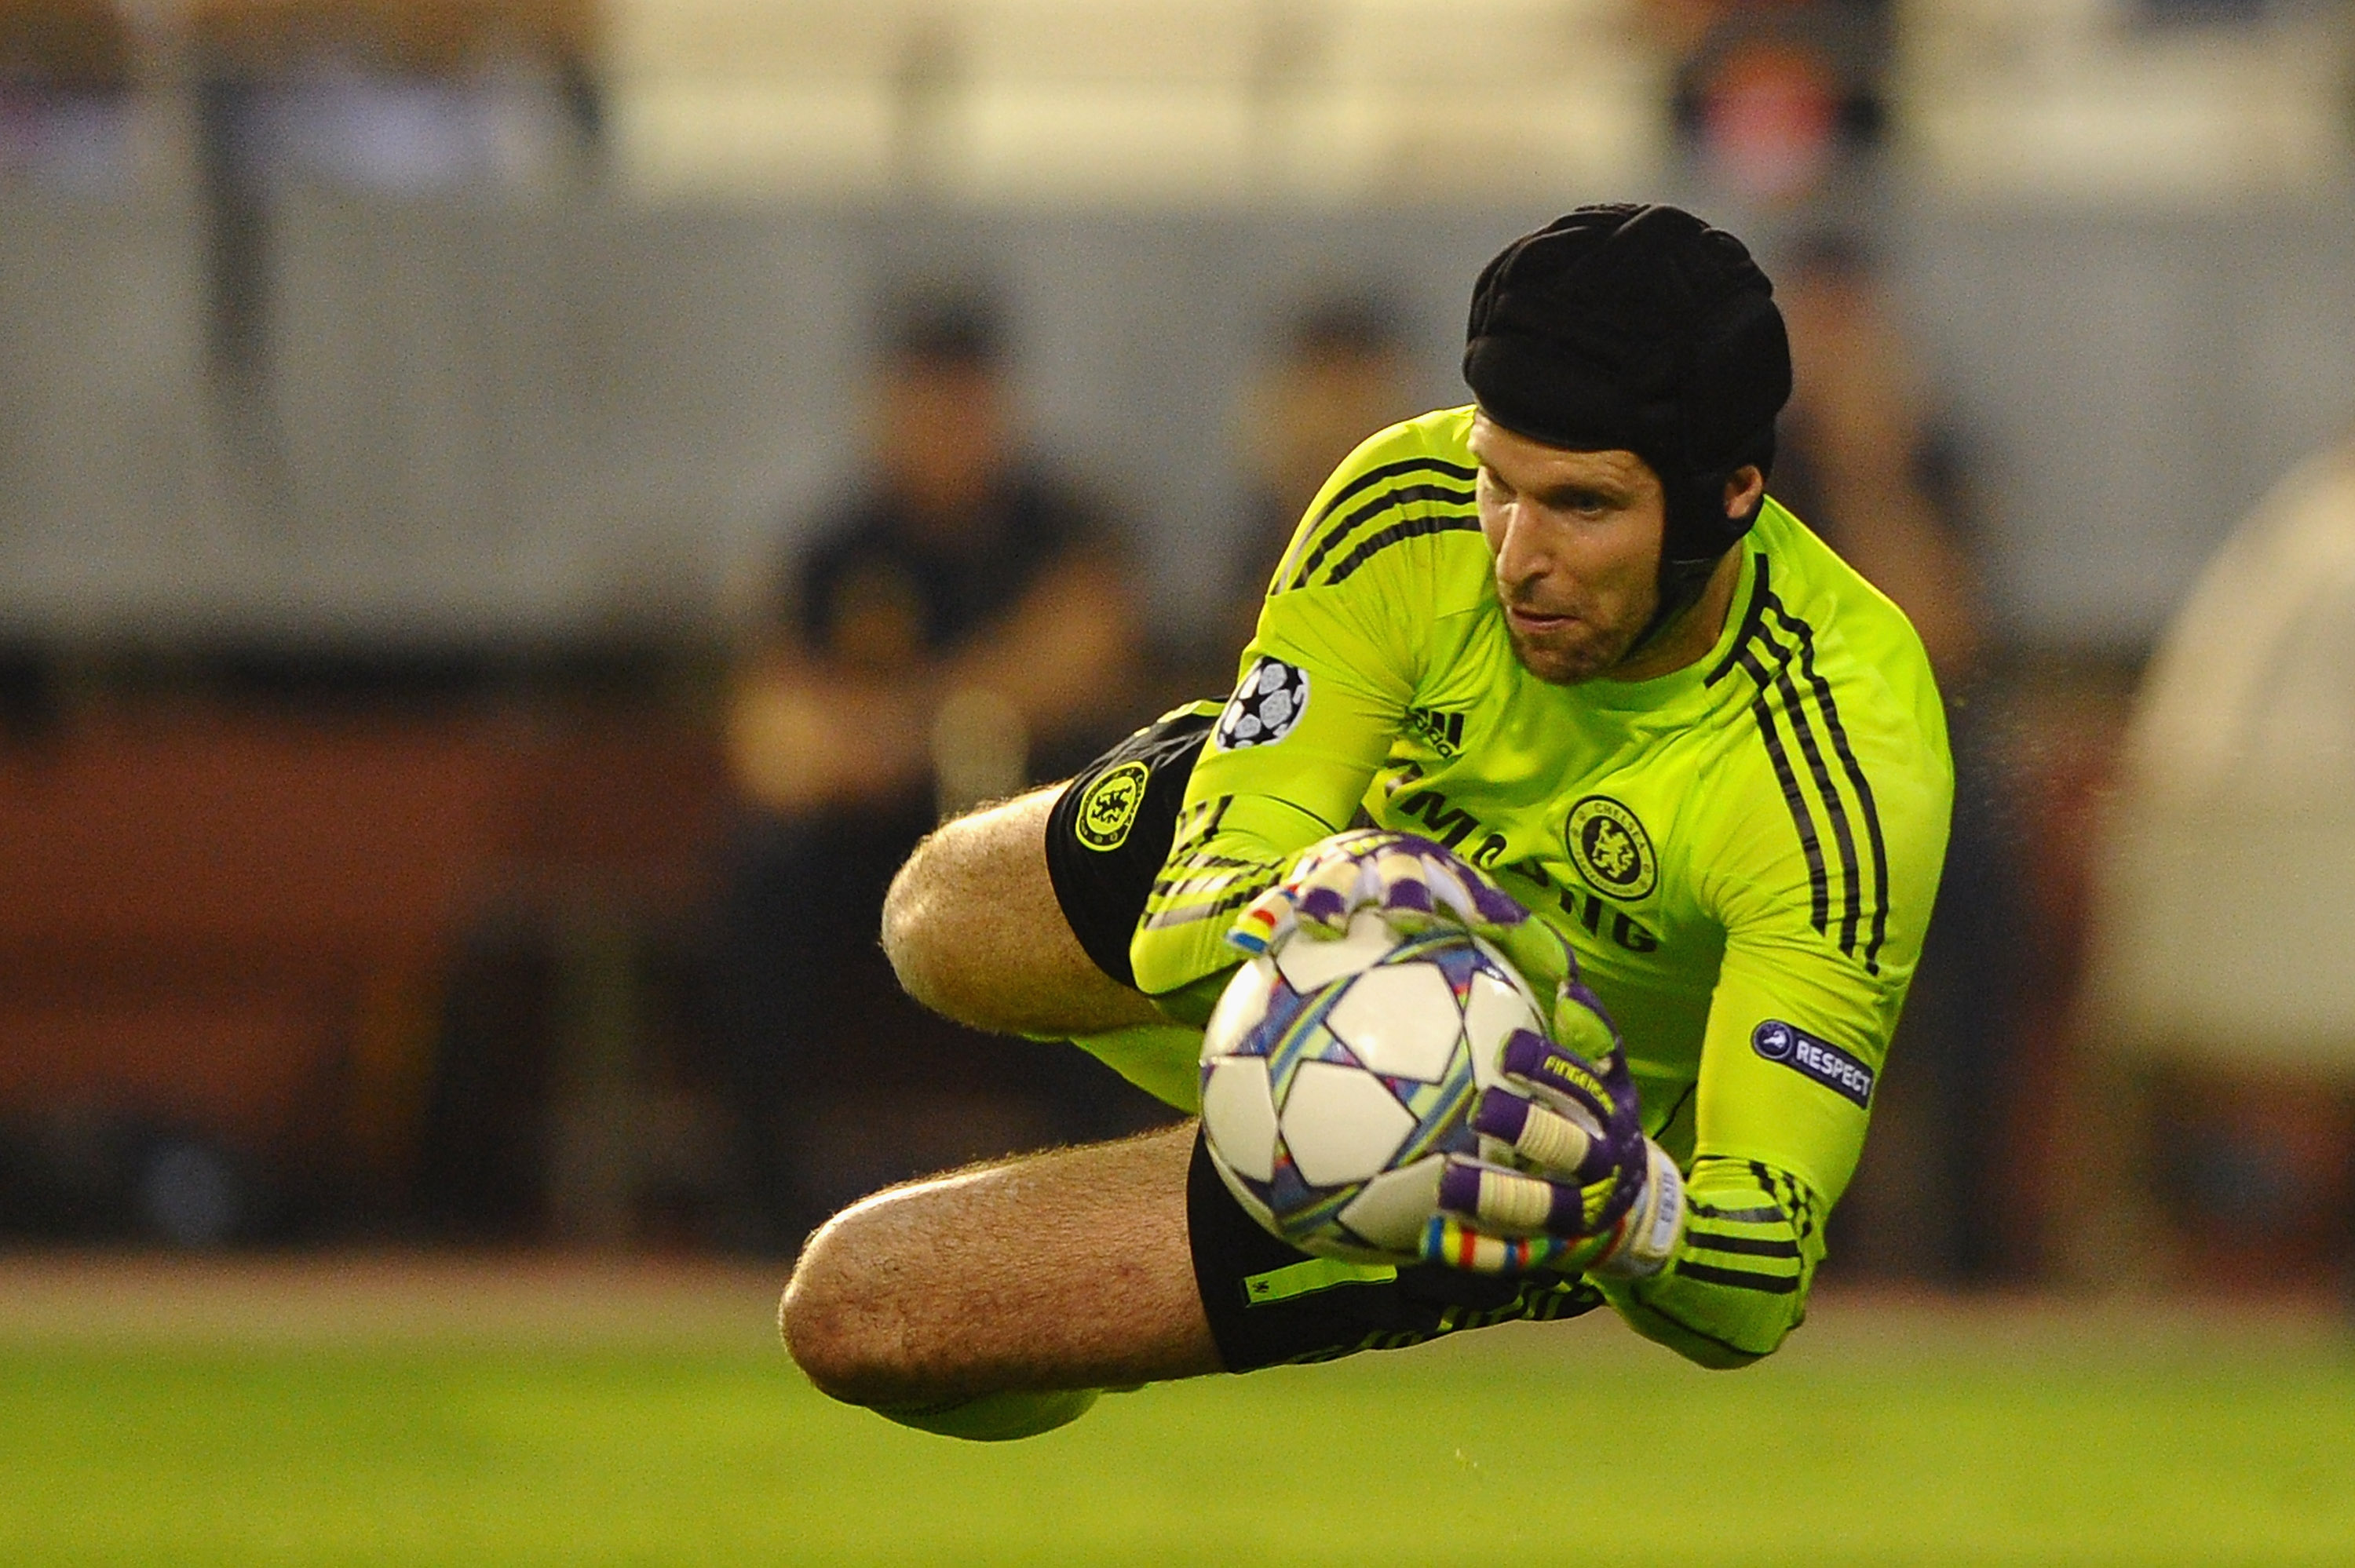 Chelsea goalkeeper Petr Cech s agent says no contact made with AS